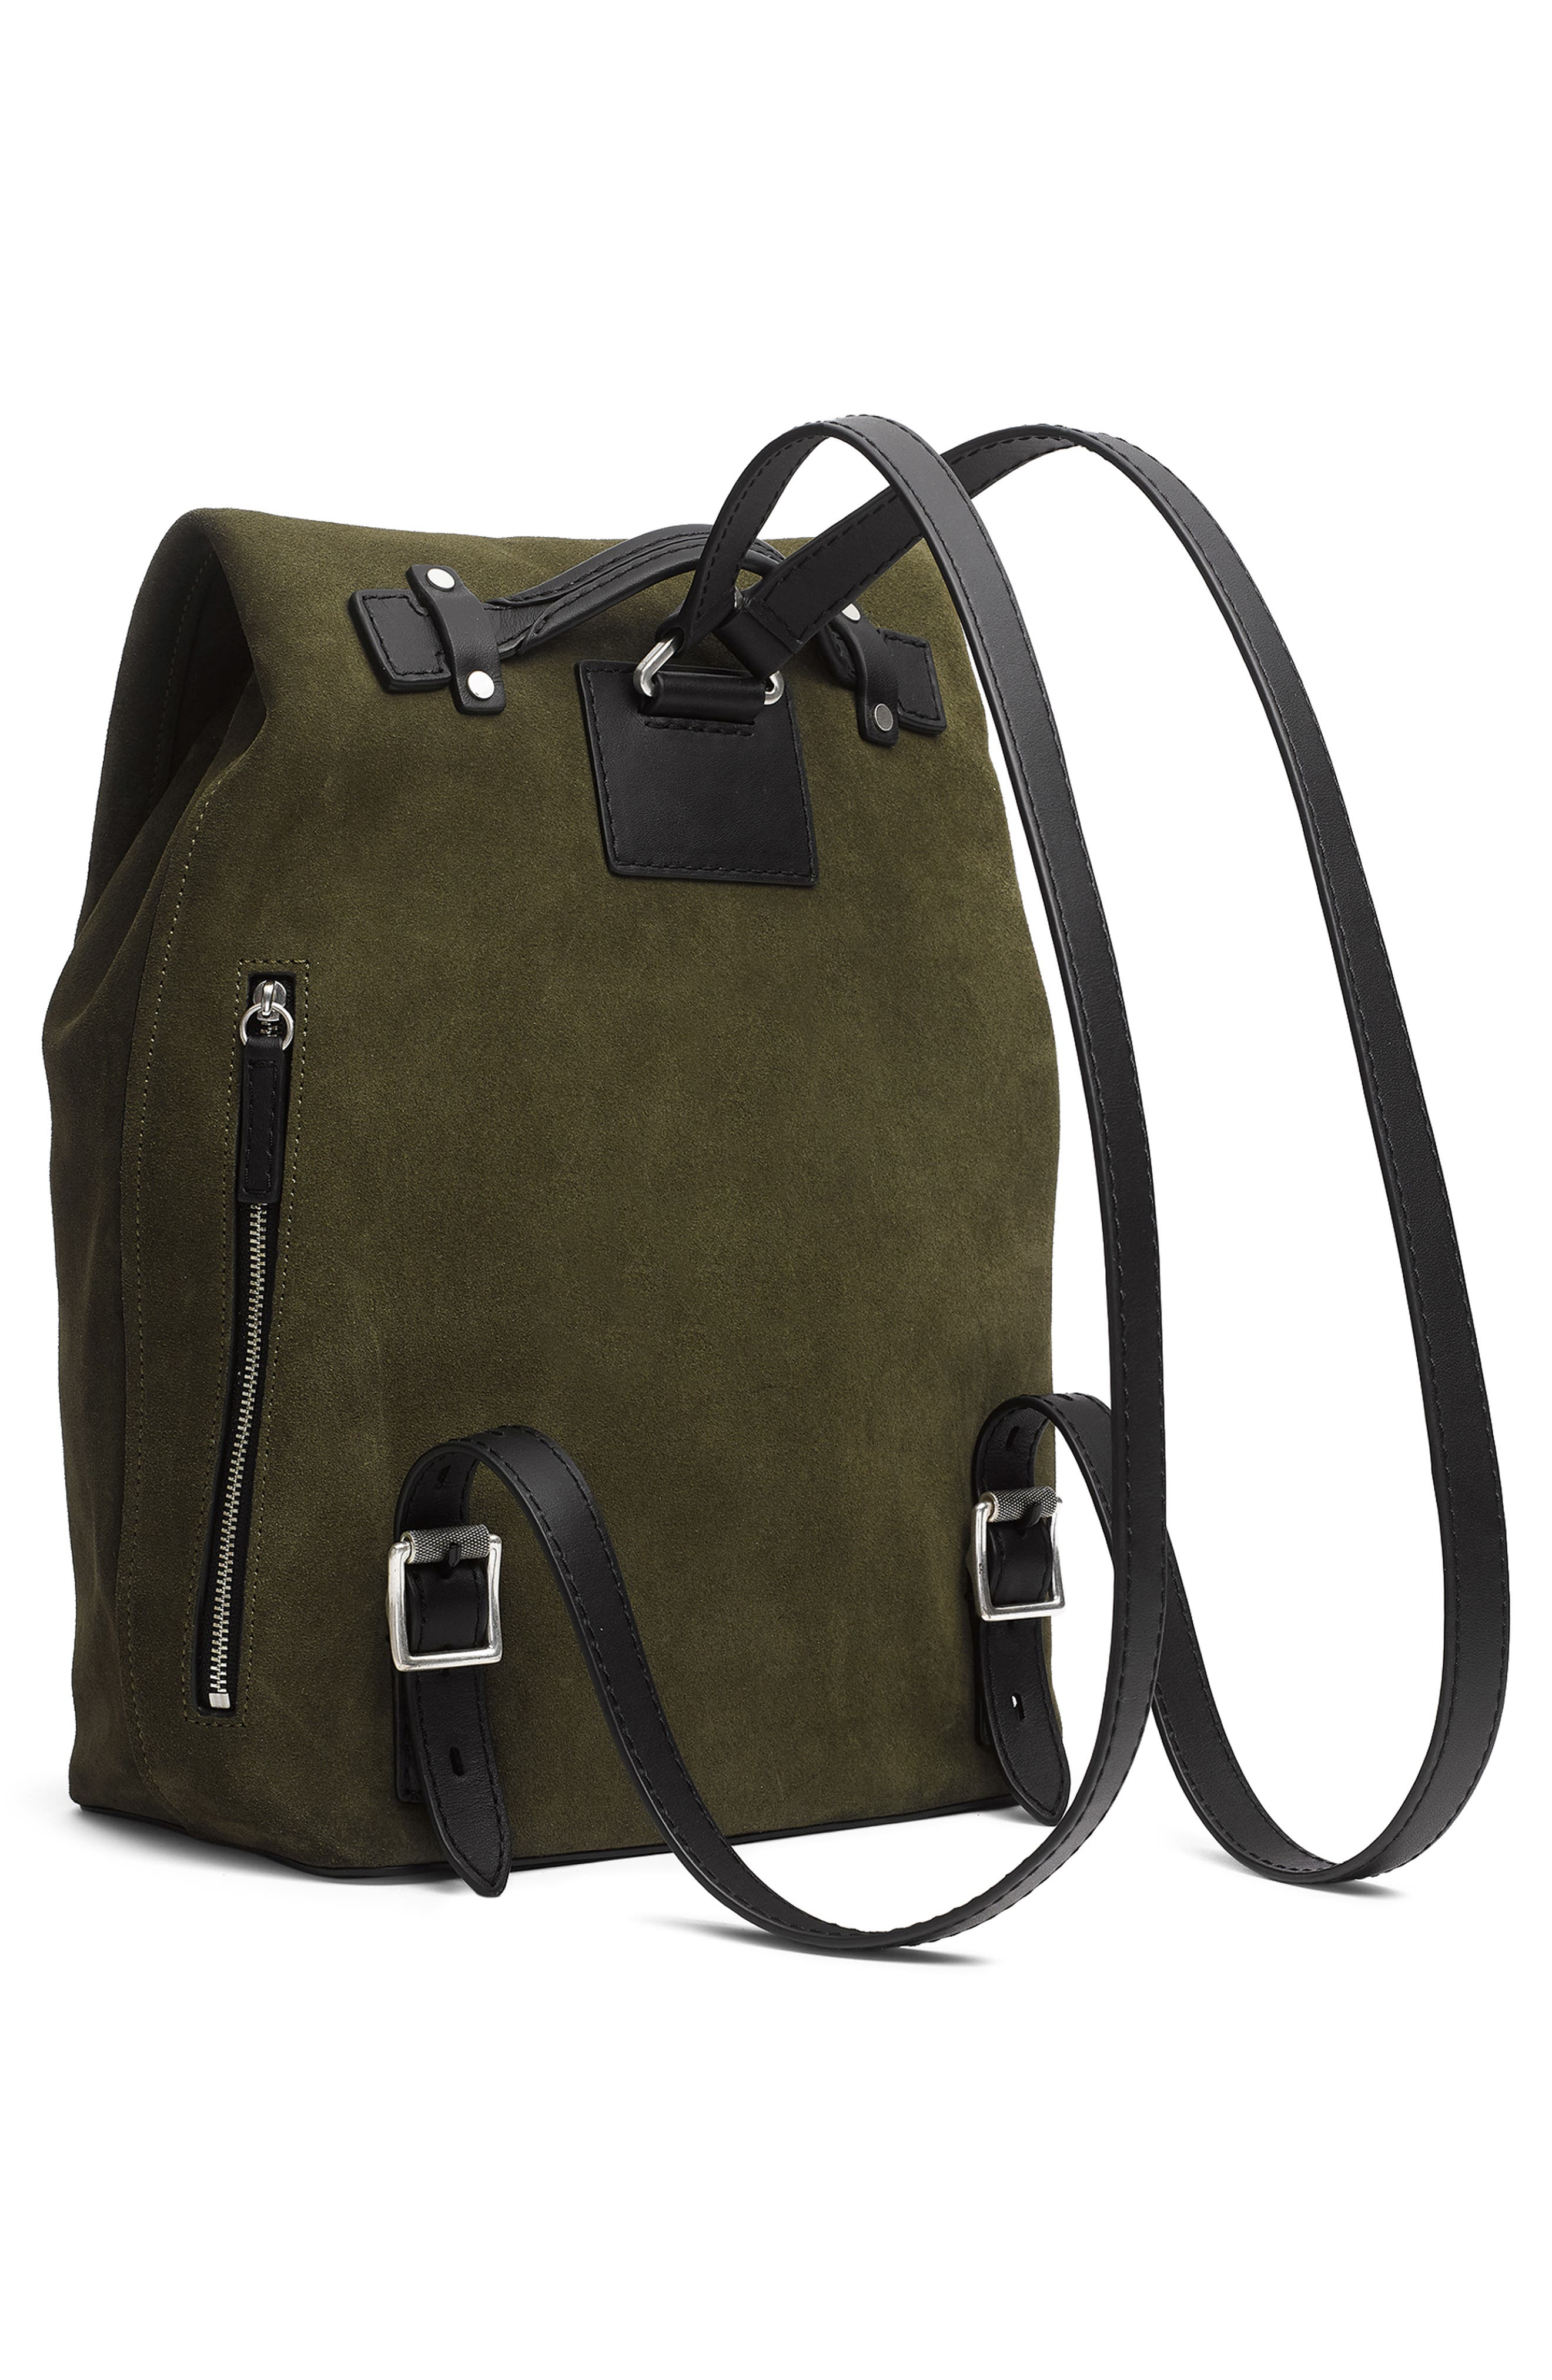 Loner Leather Backpack,                             Alternate thumbnail 3, color,                             OLIVE NIGHT SUEDE